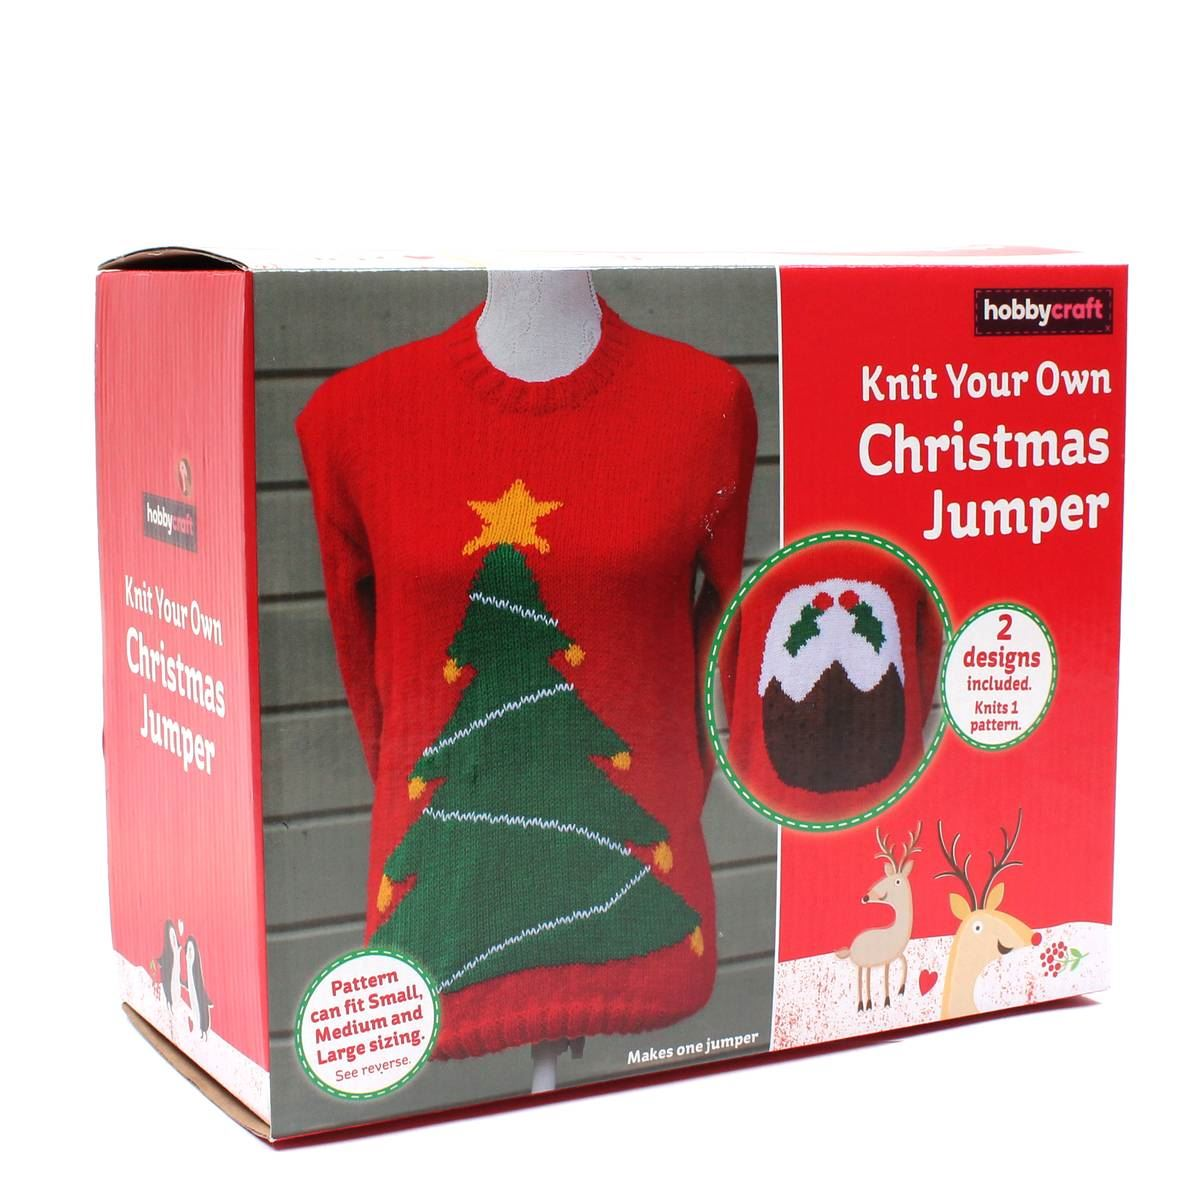 Jumper Knitting Kits Uk : Hobbycraft get crafty knit your own christmas jumper kit